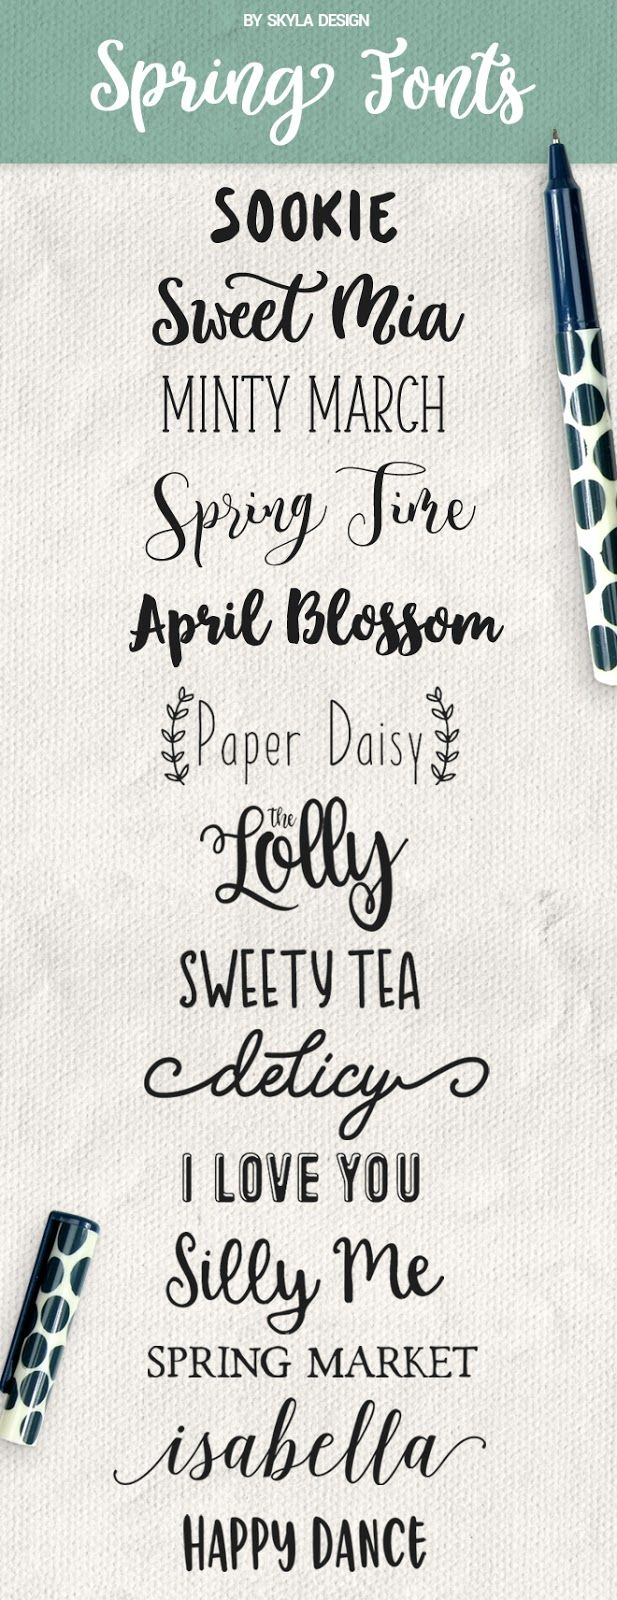 Cute Sweet Hand Written Modern Brush Calligraphy Fonts For Spring